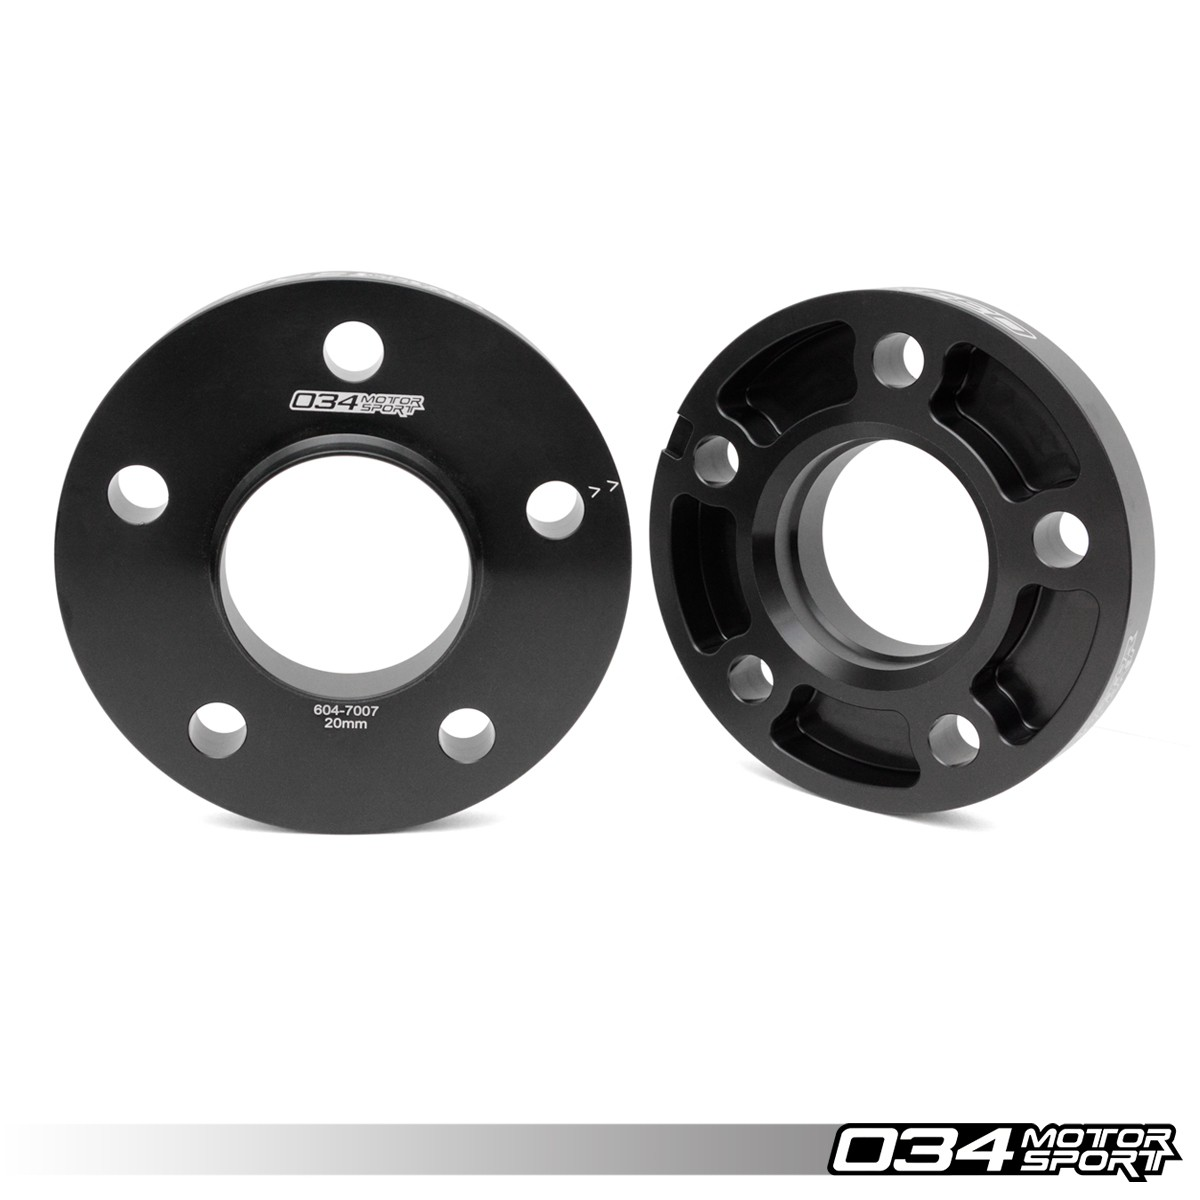 20mm Wheel Spacer Pair for Audi 5x112mm Hubs with 66.6mm Center Bore | 034-604-7007